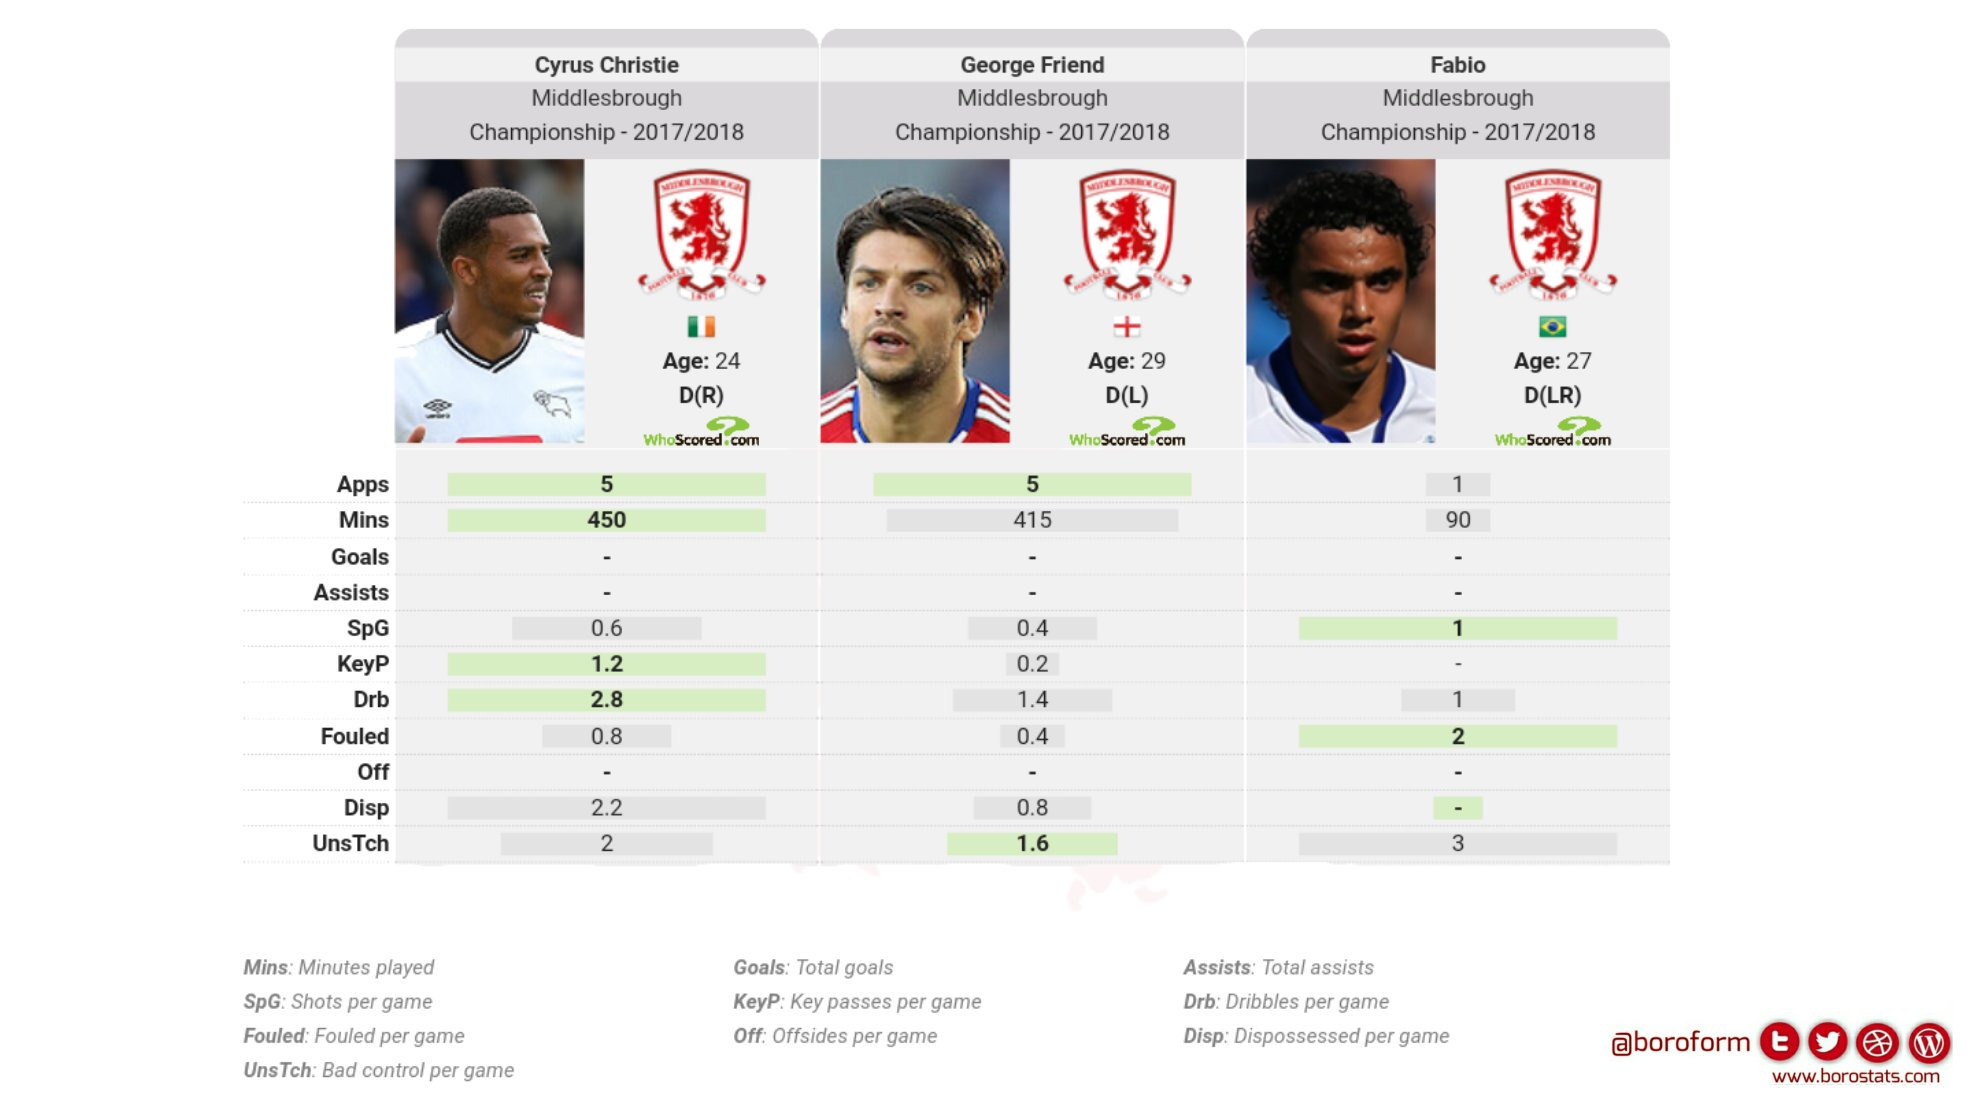 Full back comparison - Attacking contribution